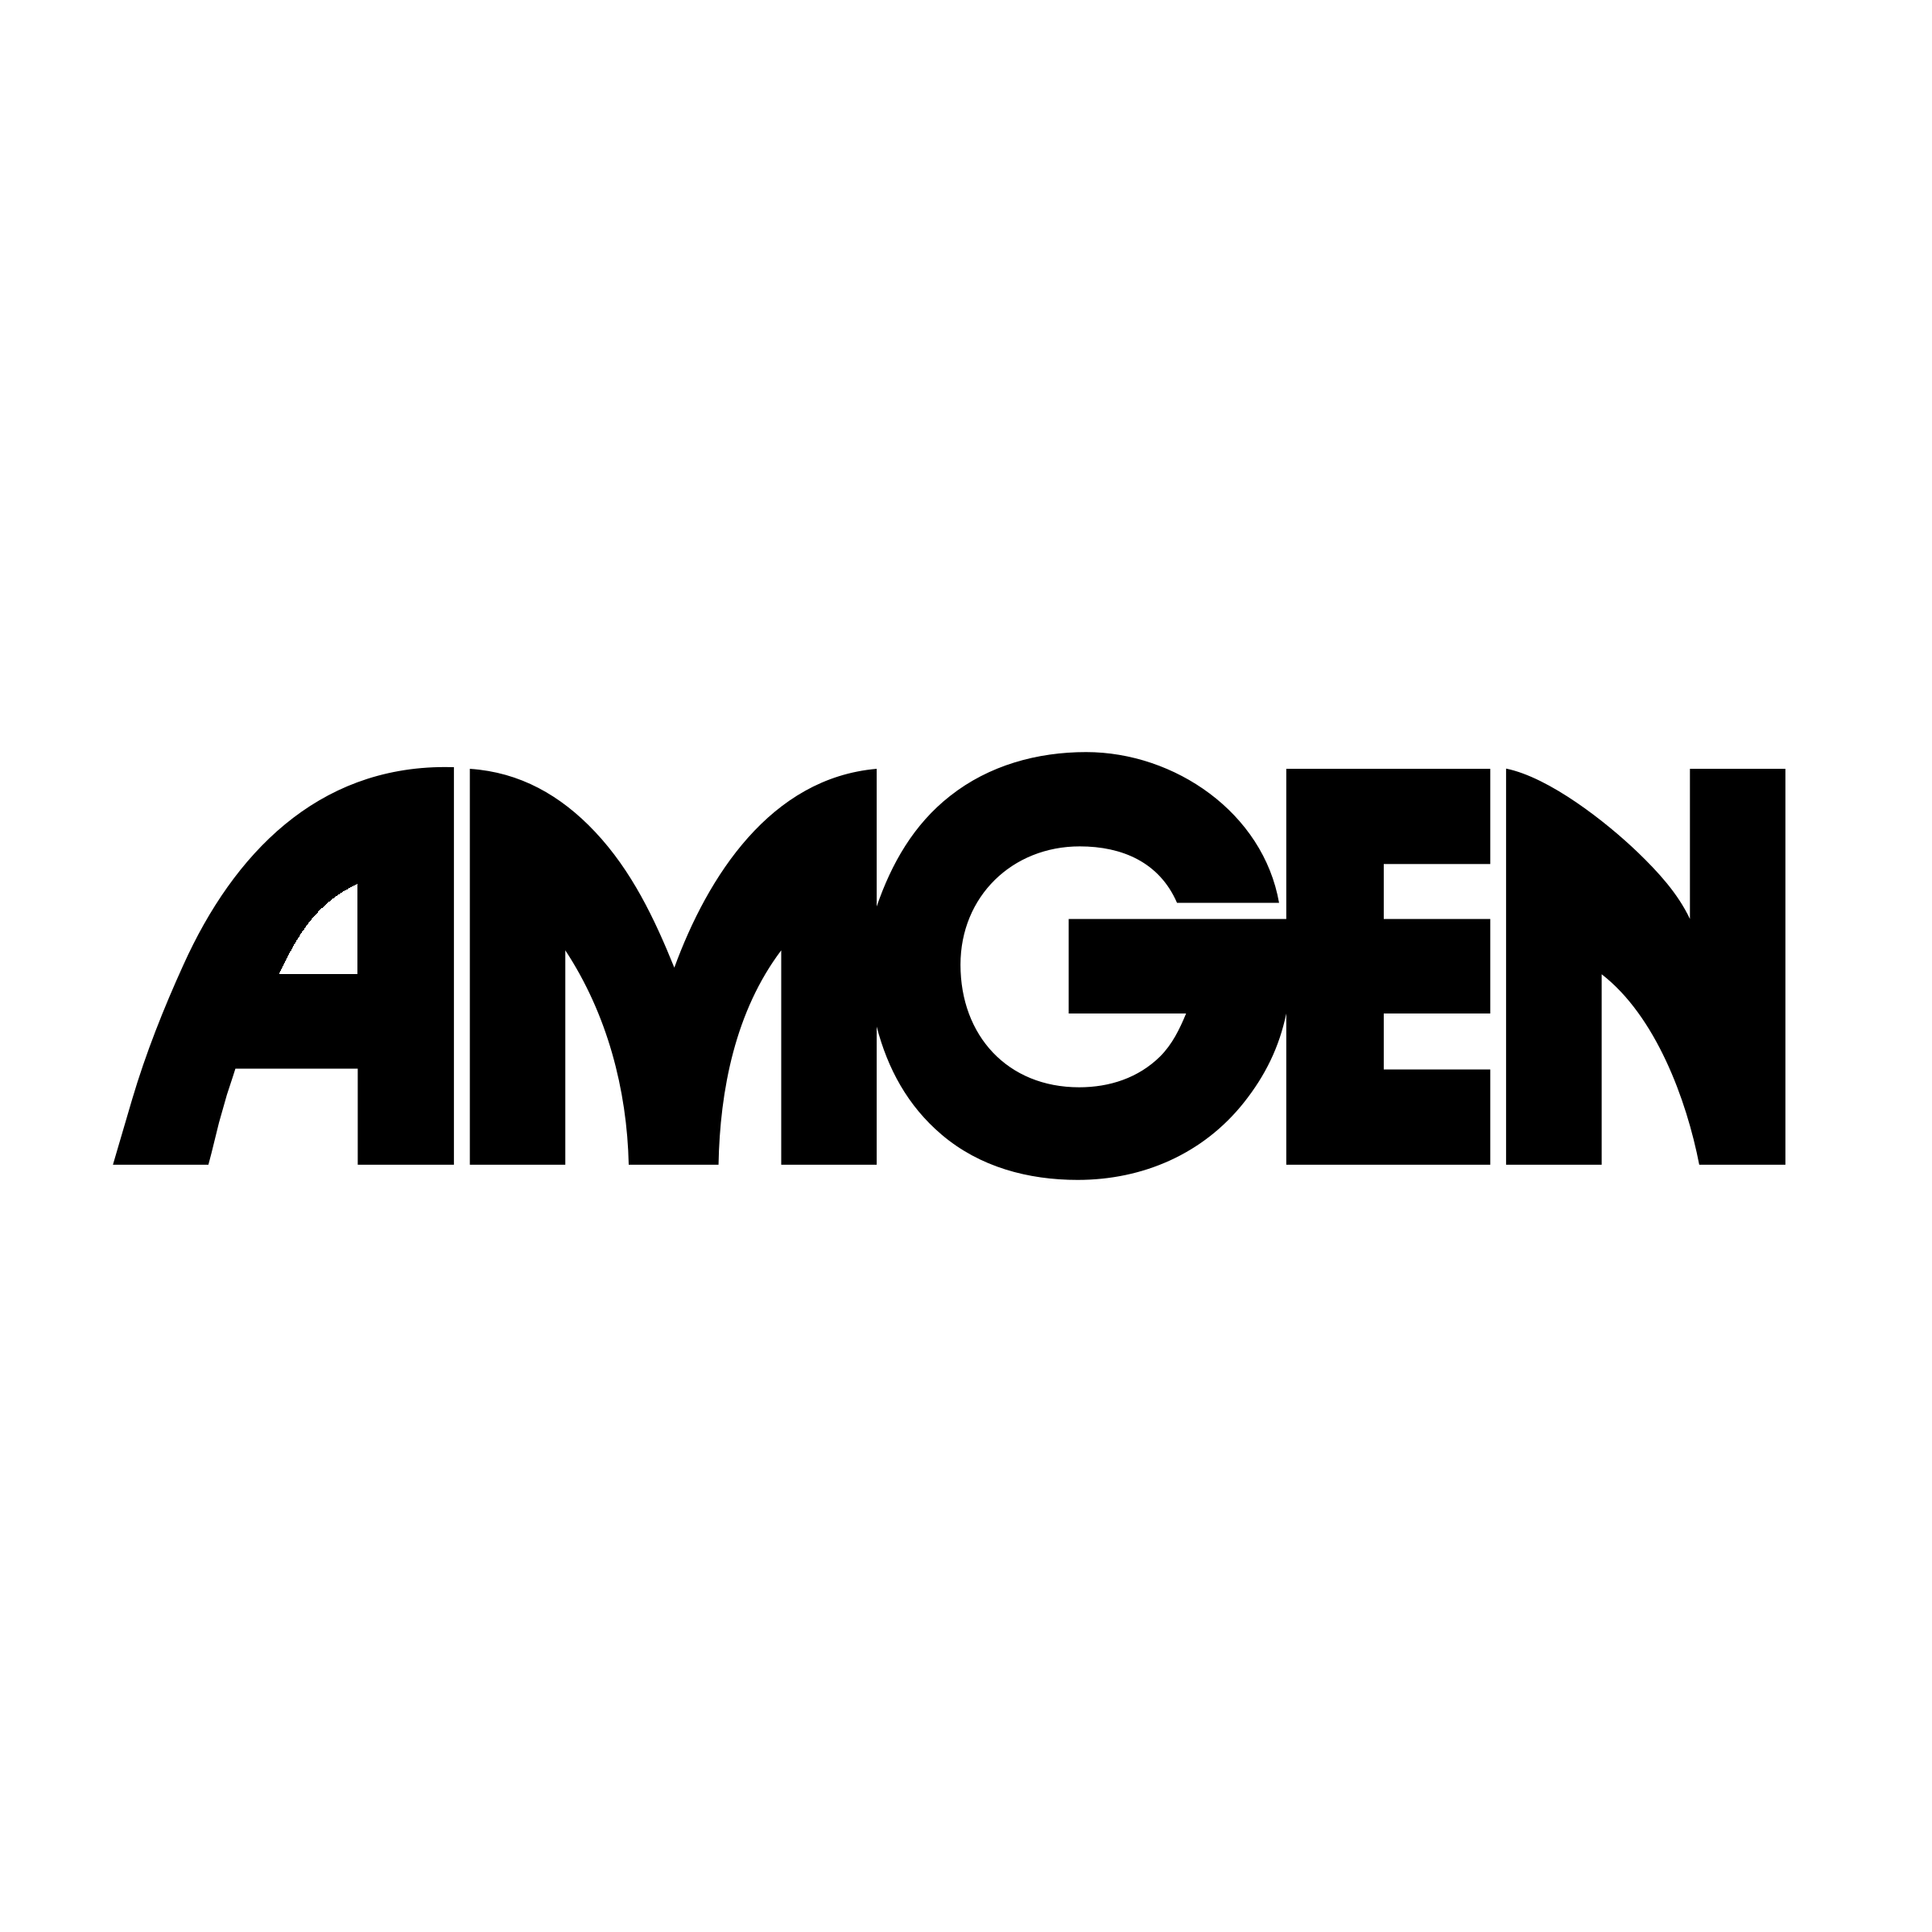 amgen-black-and-white-logo.png